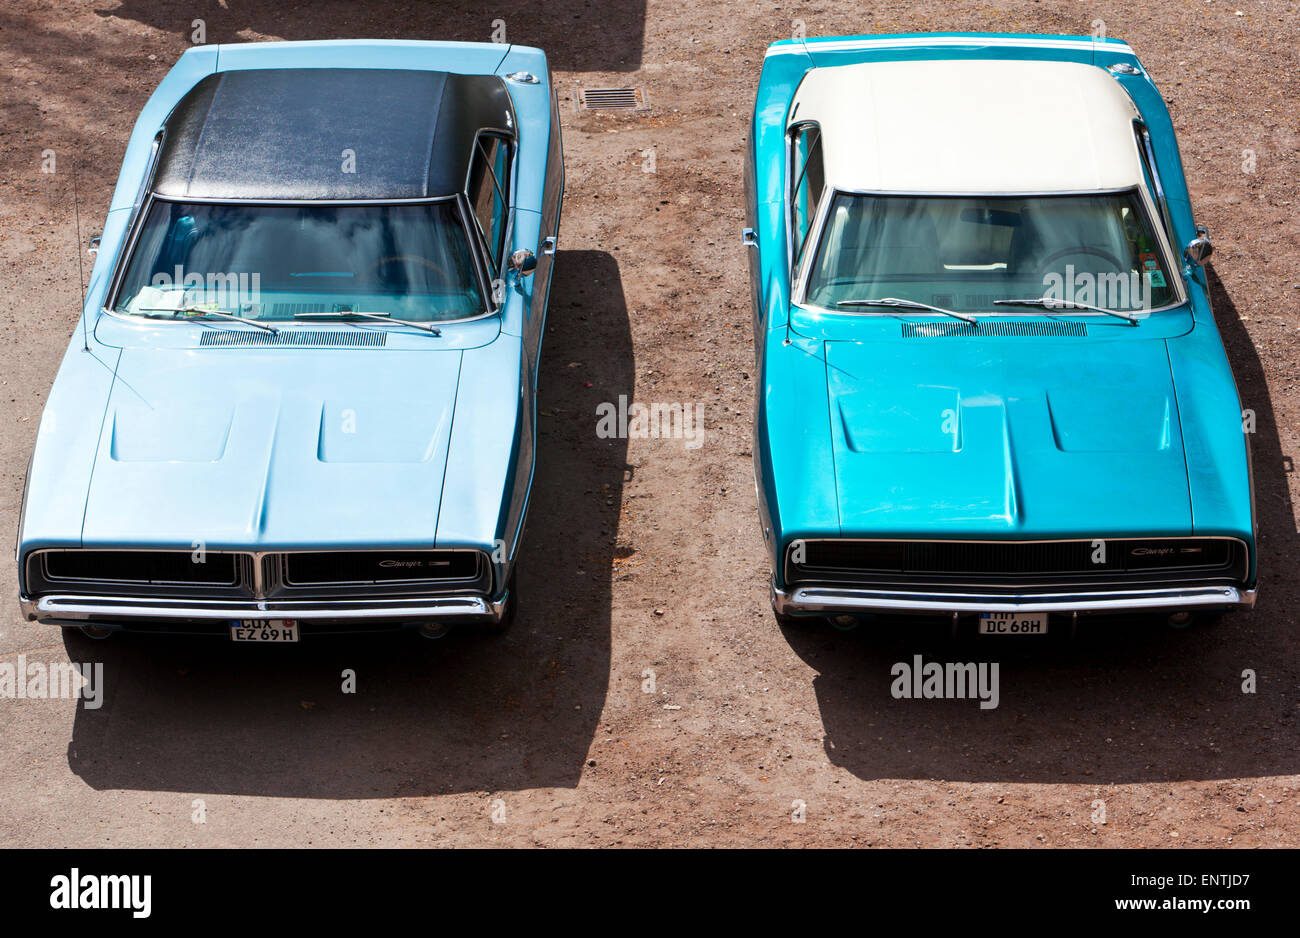 Two vintage Dodge Charger muscle cars, high angle view - Stock Image